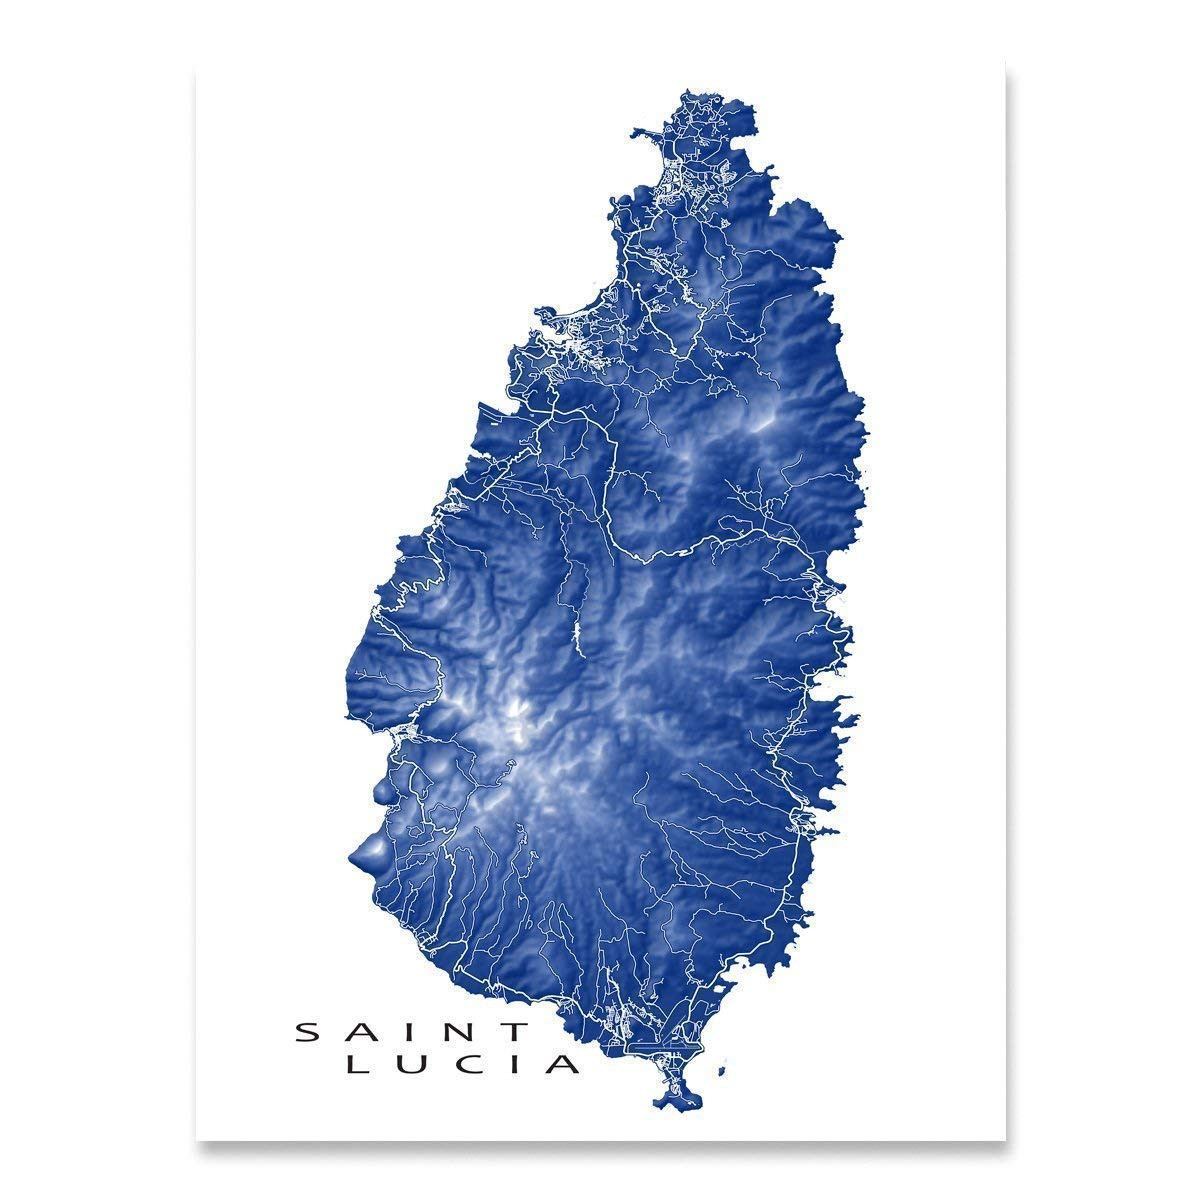 Amazon.com: Saint Lucia Map Art Print, St Lucia, Caribbean ... on st. lucia la toc map, british virgin islands, st. lucia country map, costa rica map, santa lucia island on map, turks and caicos islands, suriname map, world map, hotels st. lucia fl map, caribbean map, mexico map, st. lucia flag map, cayman islands, st. lucia climate map, bhutan map, st. lucia political map, antigua and barbuda, st. lucia island resorts map, st lucia satellite map, barbados map, the bahamas, vigie beach map, trinidad and tobago, serbia map, sri lanka map, saint kitts and nevis, belize map,